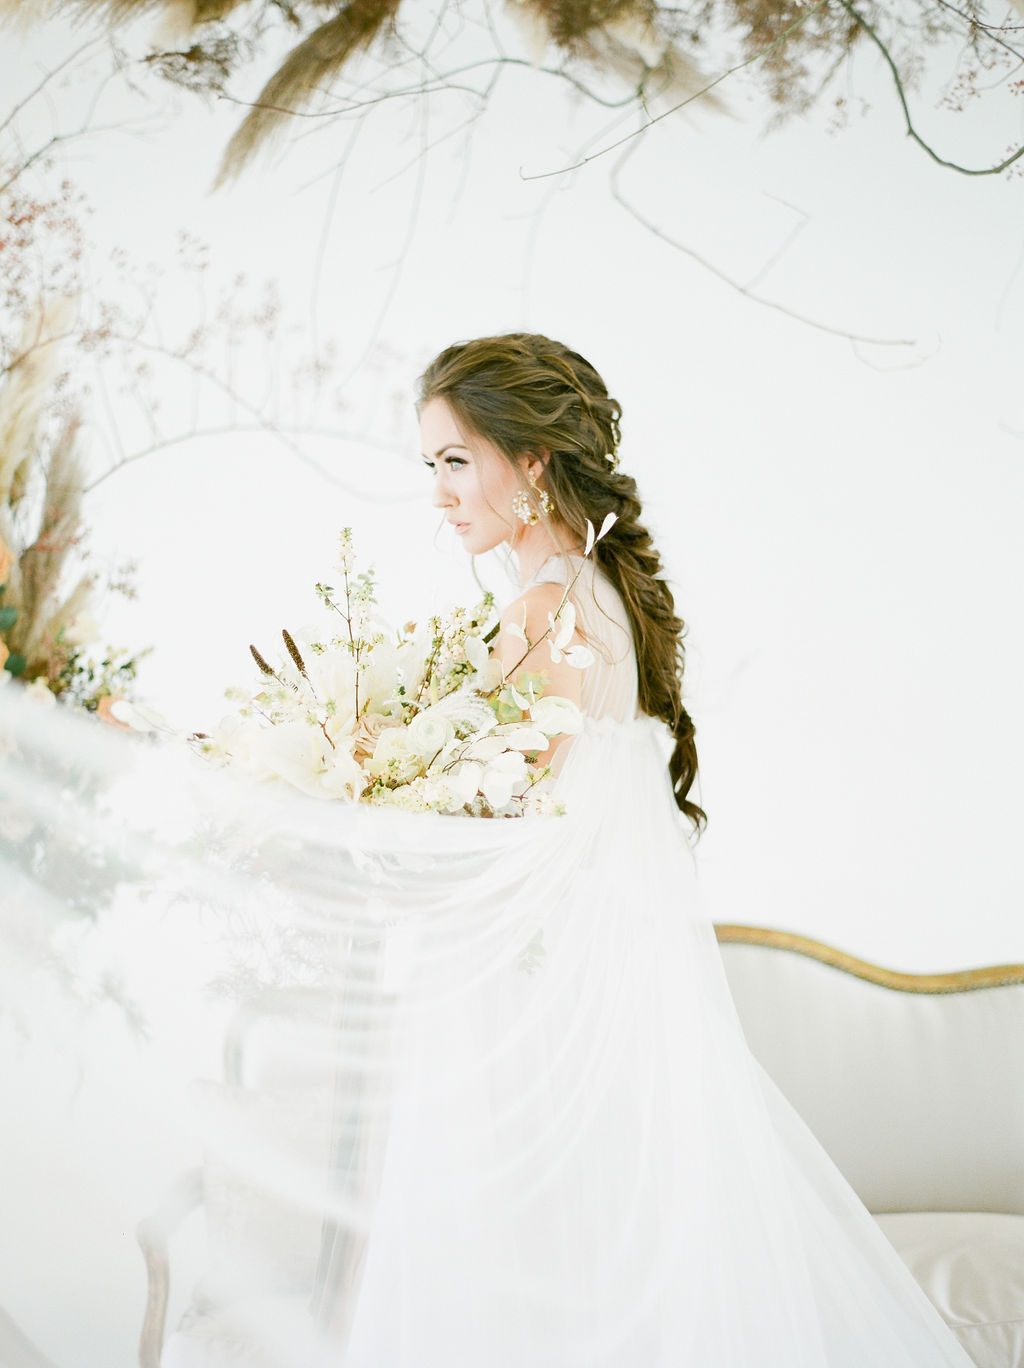 Bride with bridal braid and bouquet at Airside Spaces in Vancouver